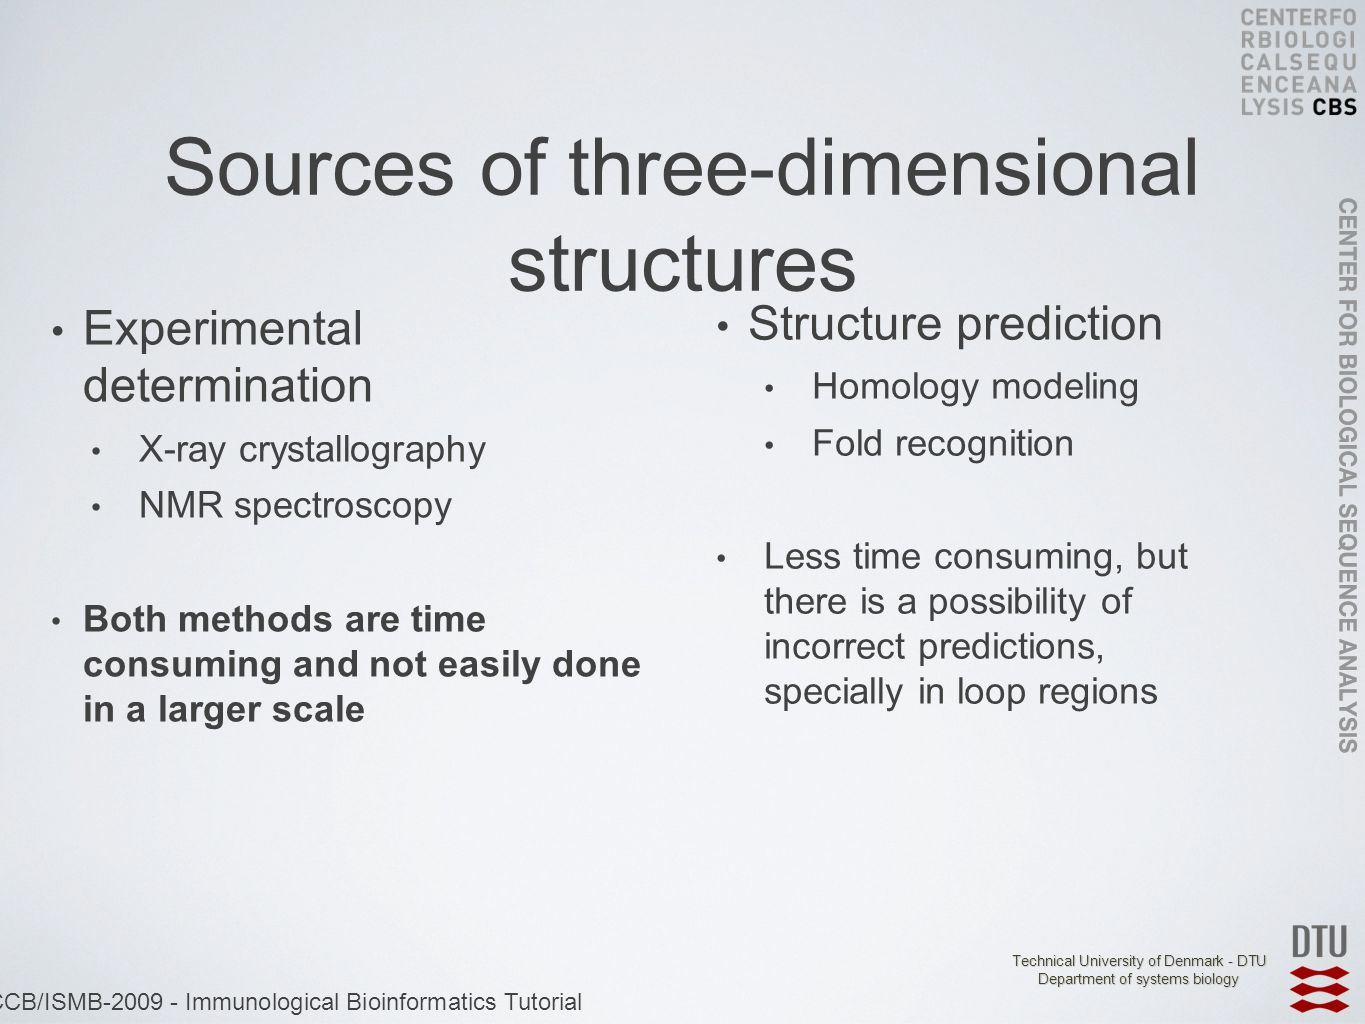 Technical University of Denmark - DTU Department of systems biology ECCB/ISMB-2009 - Immunological Bioinformatics Tutorial Sources of three-dimensional structures Experimental determination X-ray crystallography NMR spectroscopy Both methods are time consuming and not easily done in a larger scale Structure prediction Homology modeling Fold recognition Less time consuming, but there is a possibility of incorrect predictions, specially in loop regions